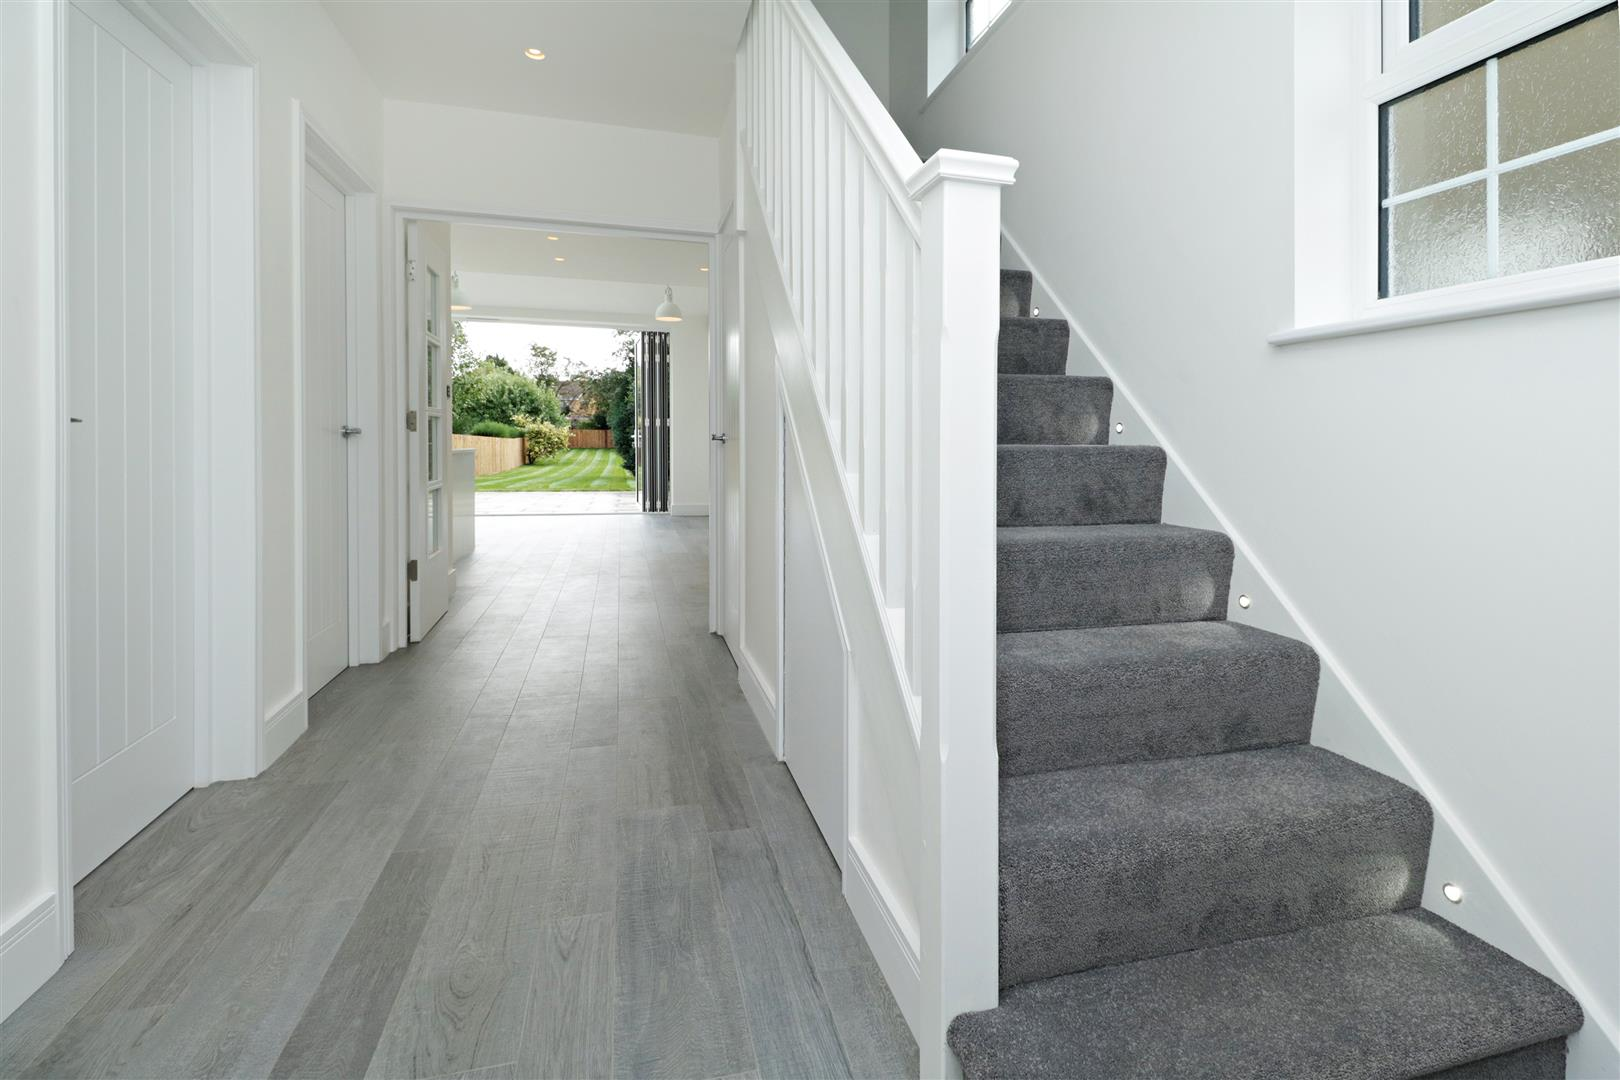 4 bed to rent in Loom Lane, Radlett - (Property Image 1)